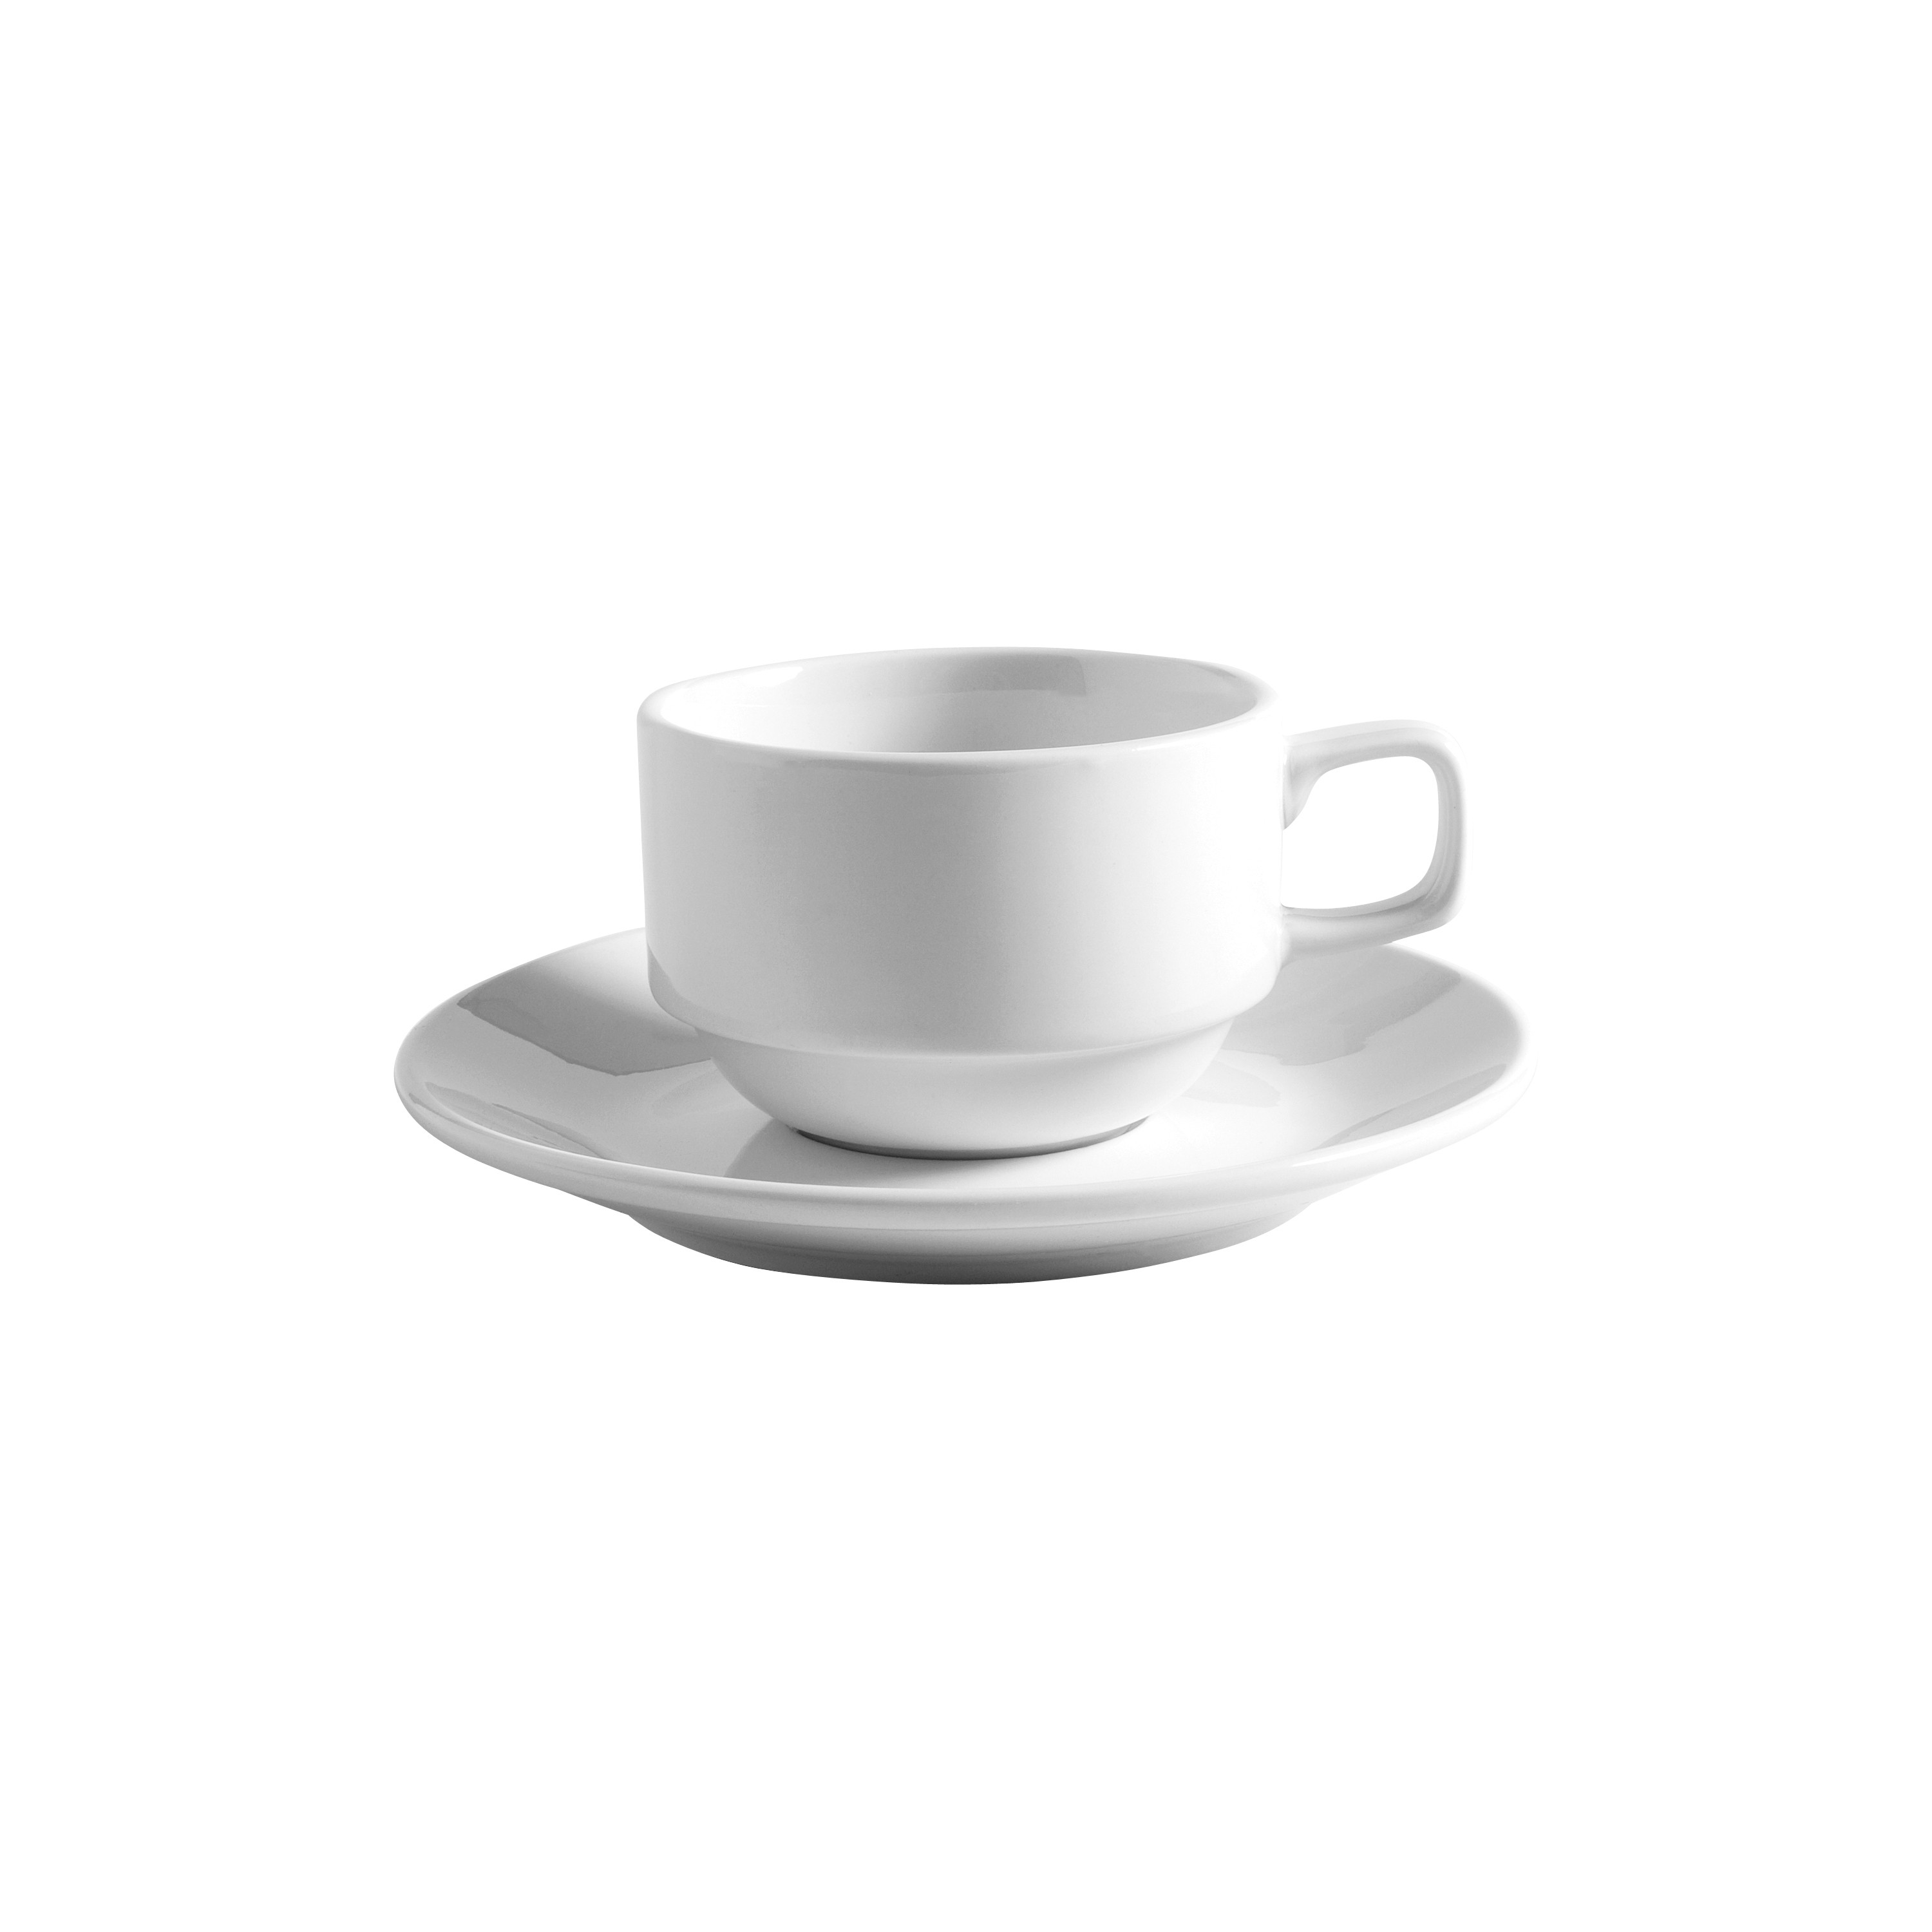 Bistro Stackable Teacup 200ml